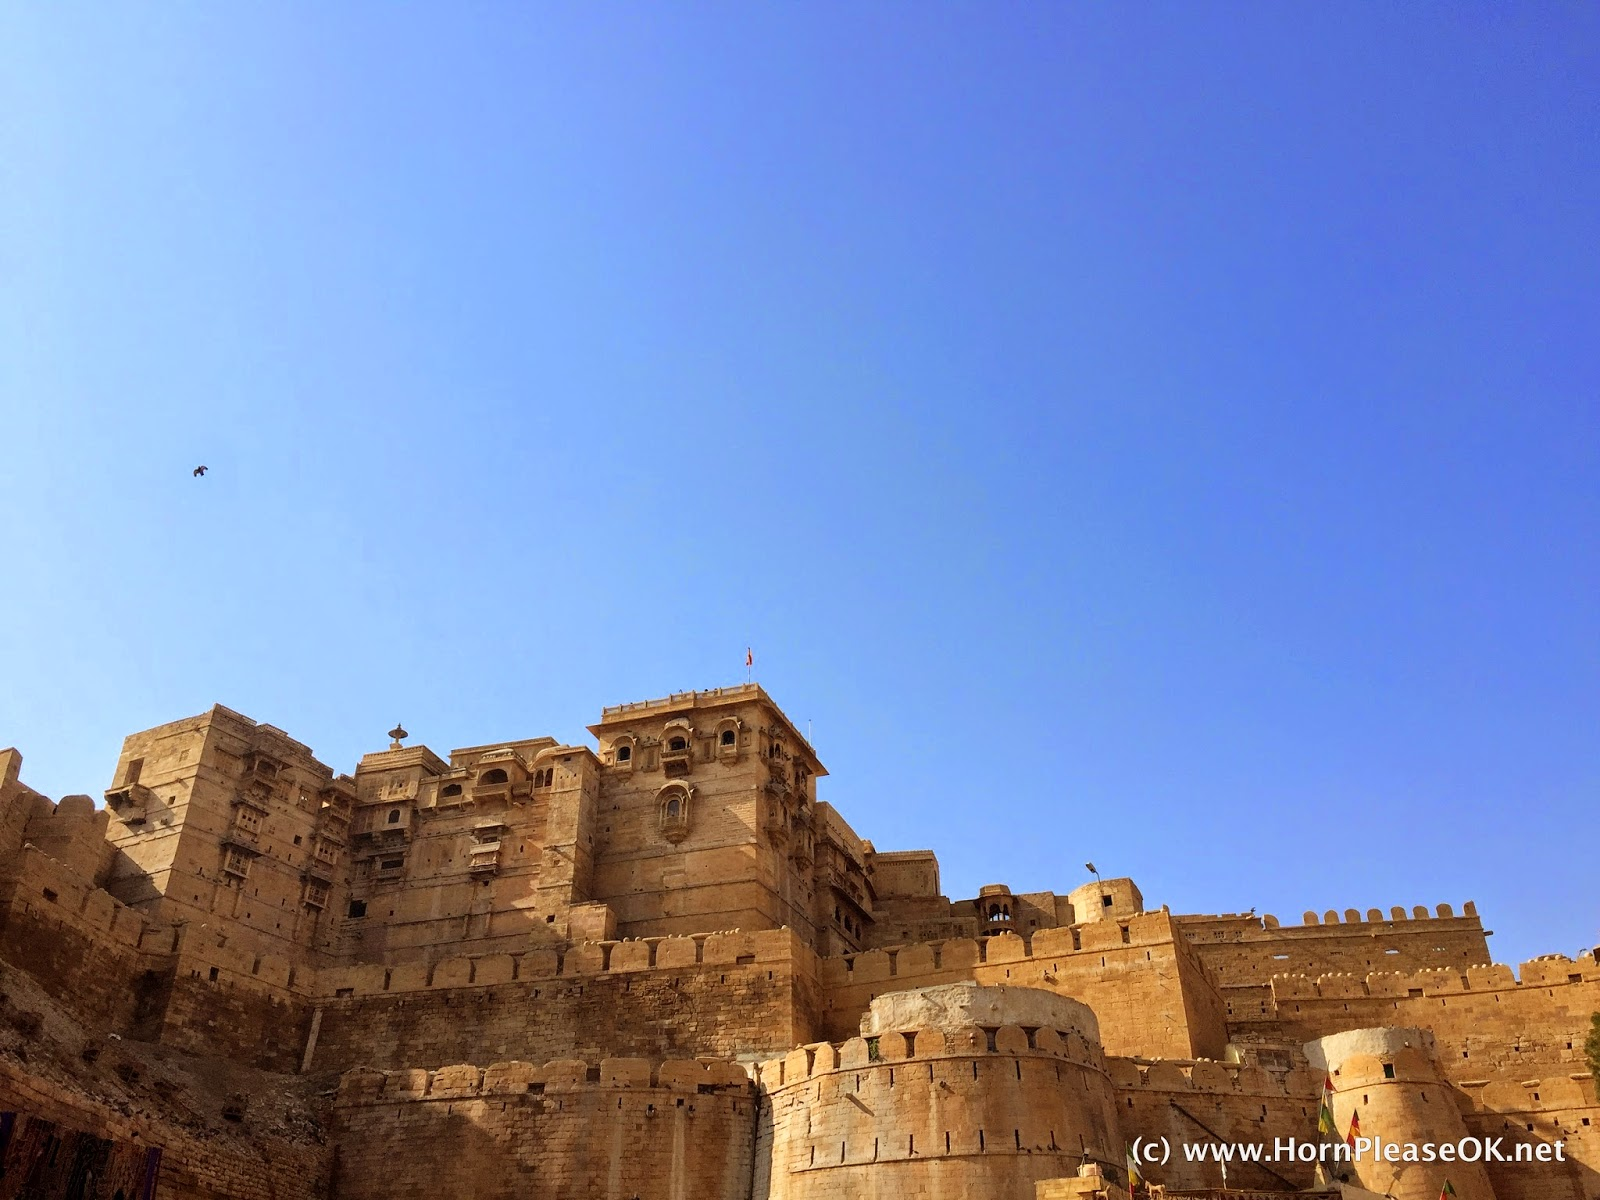 The Golden Fort at Jaisalmer